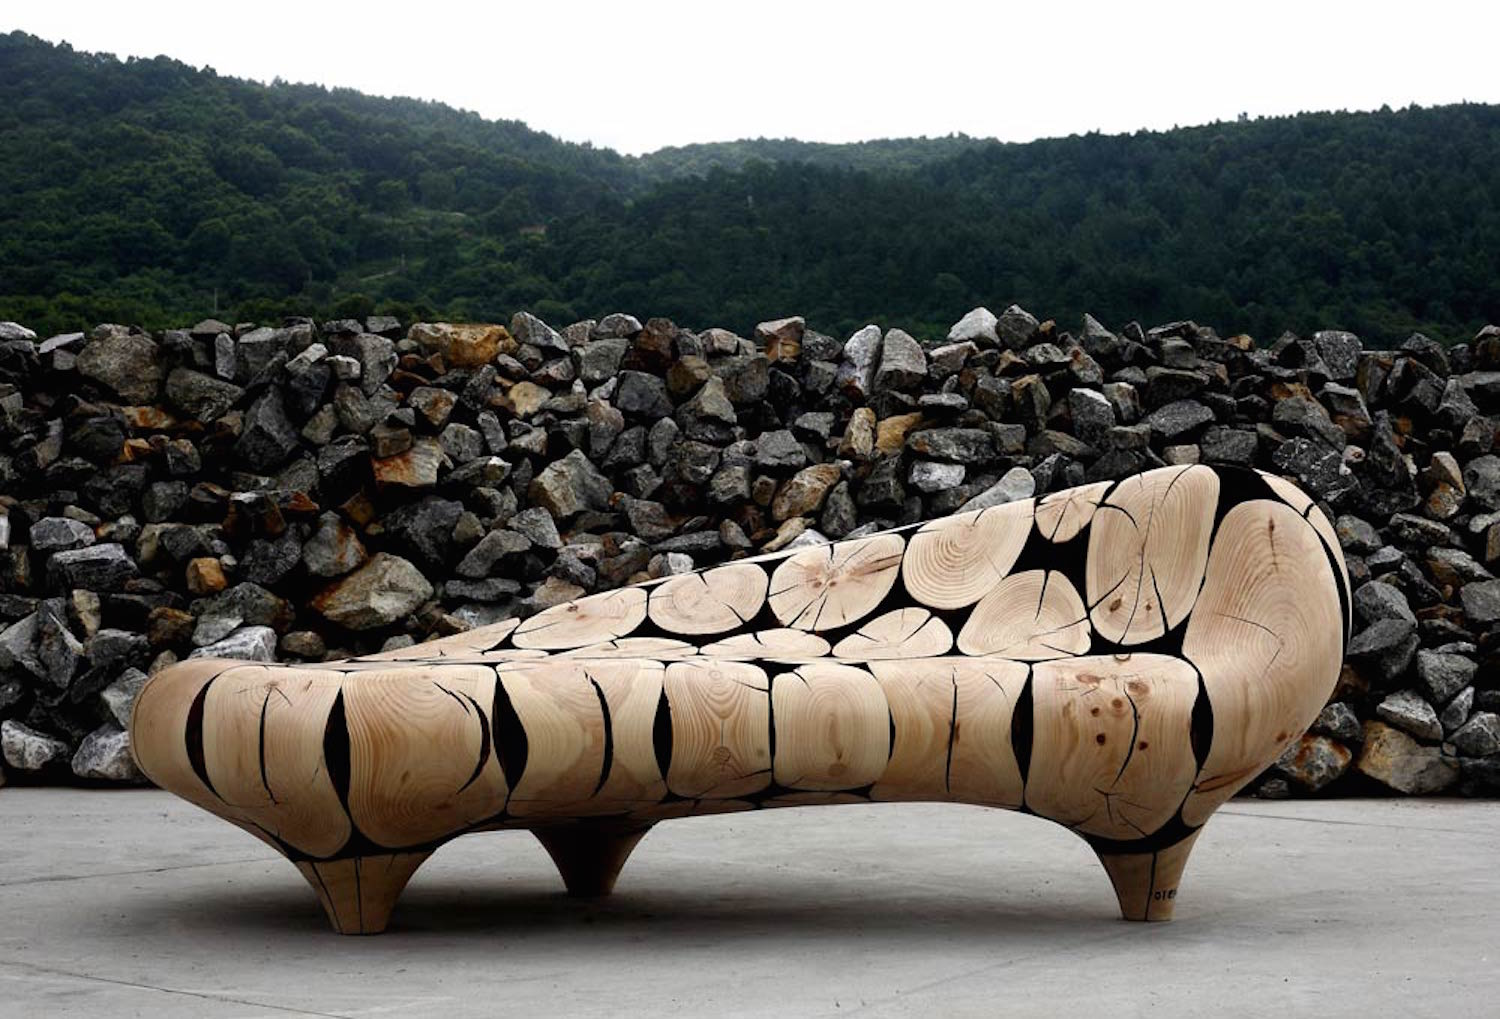 Wood Sculptures by Jae Hyo Lee #artpeople